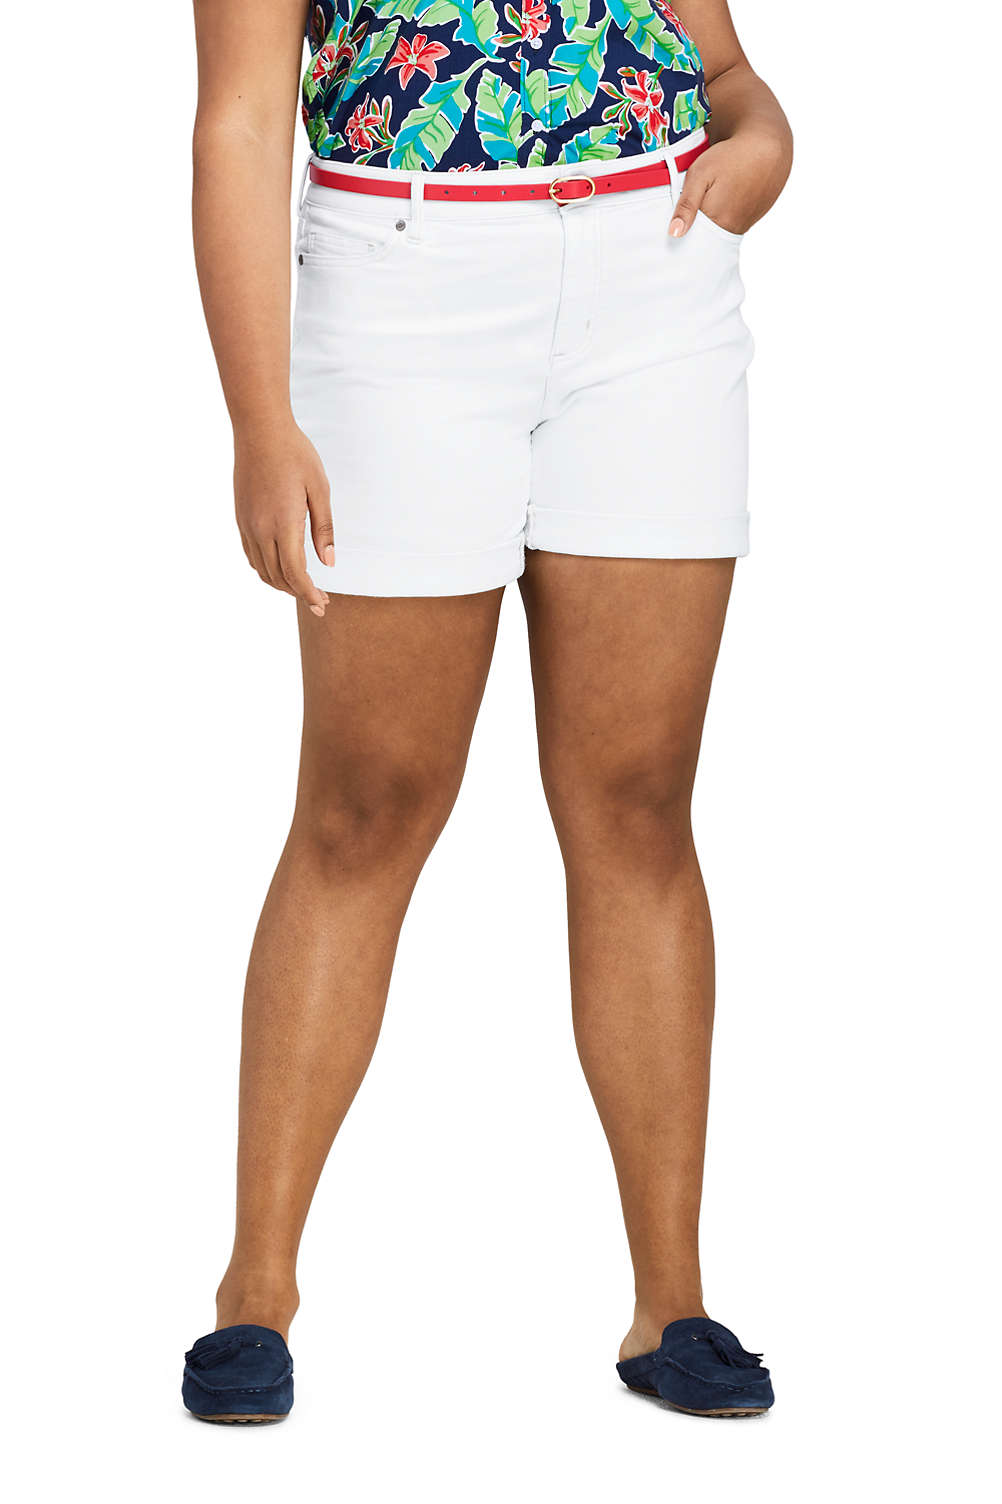 59ebf3c4d6 Women's Plus Size White Mid Rise Roll Cuff Jean Shorts from Lands' End